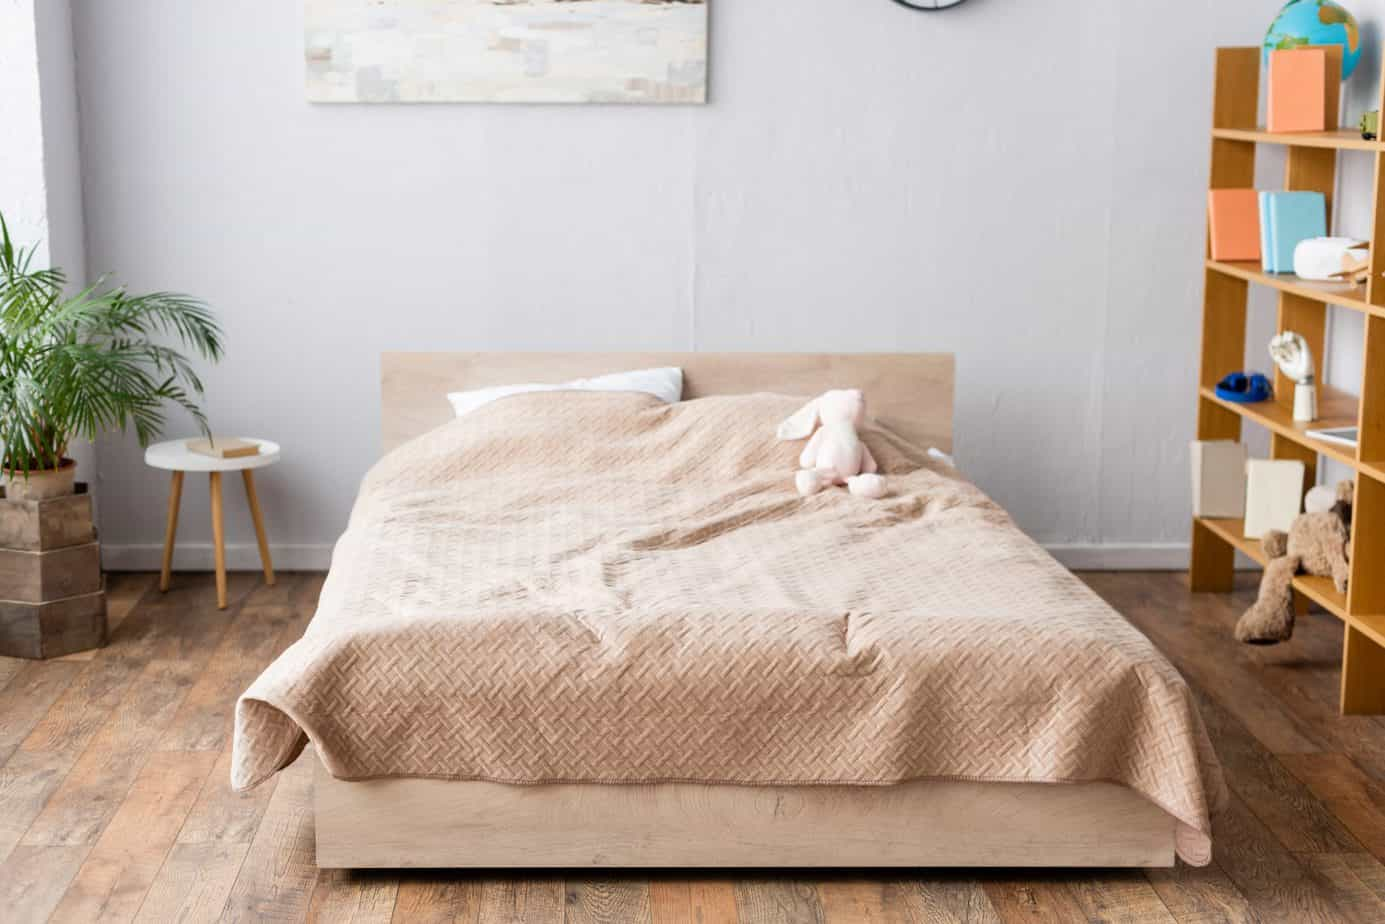 The Best Bed Bug Mattress Covers